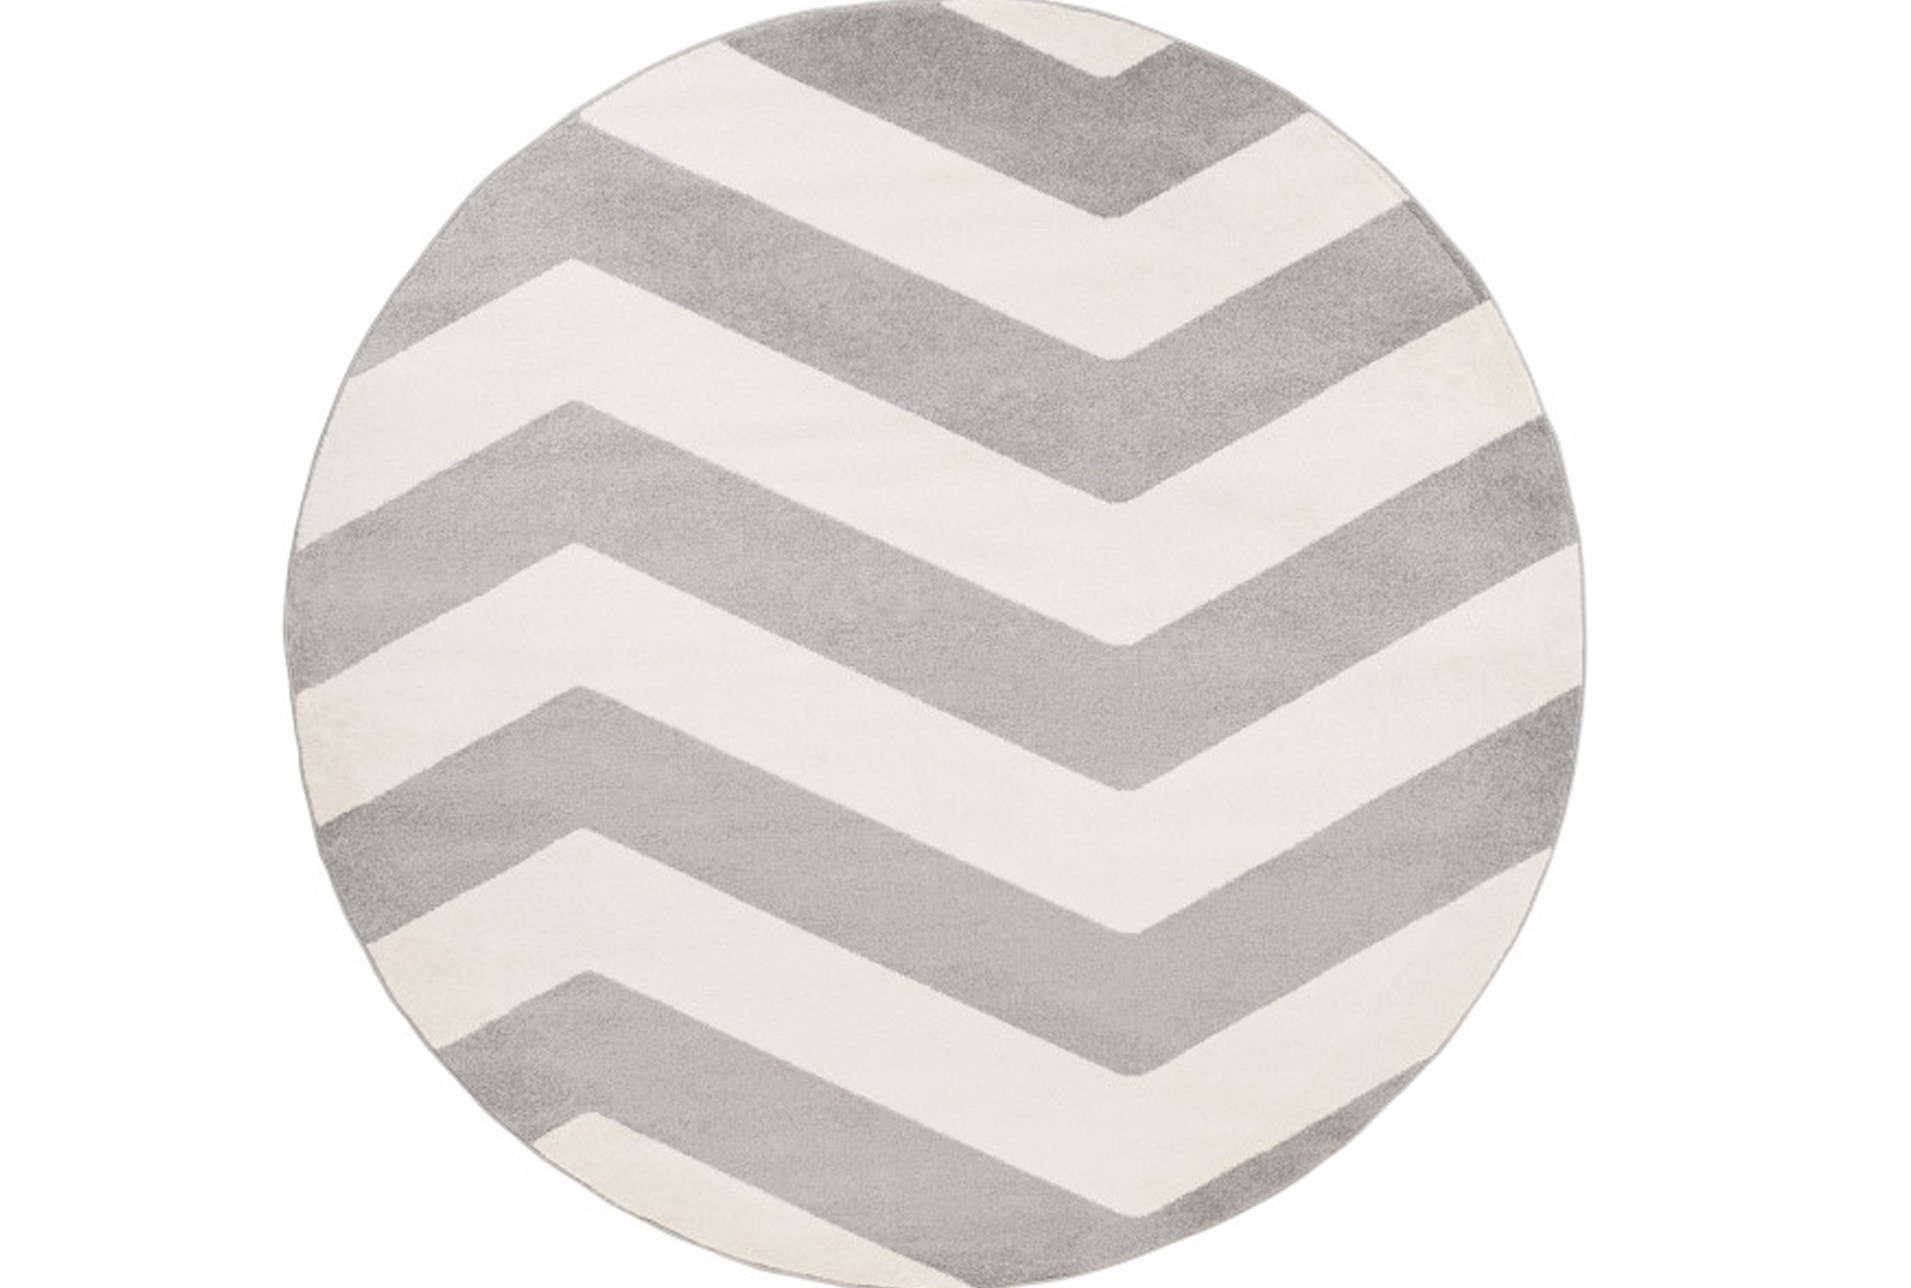 94 Inch Round Rug Tambaleo Grey White Qty 1 Has Been Successfully Added To Your Cart